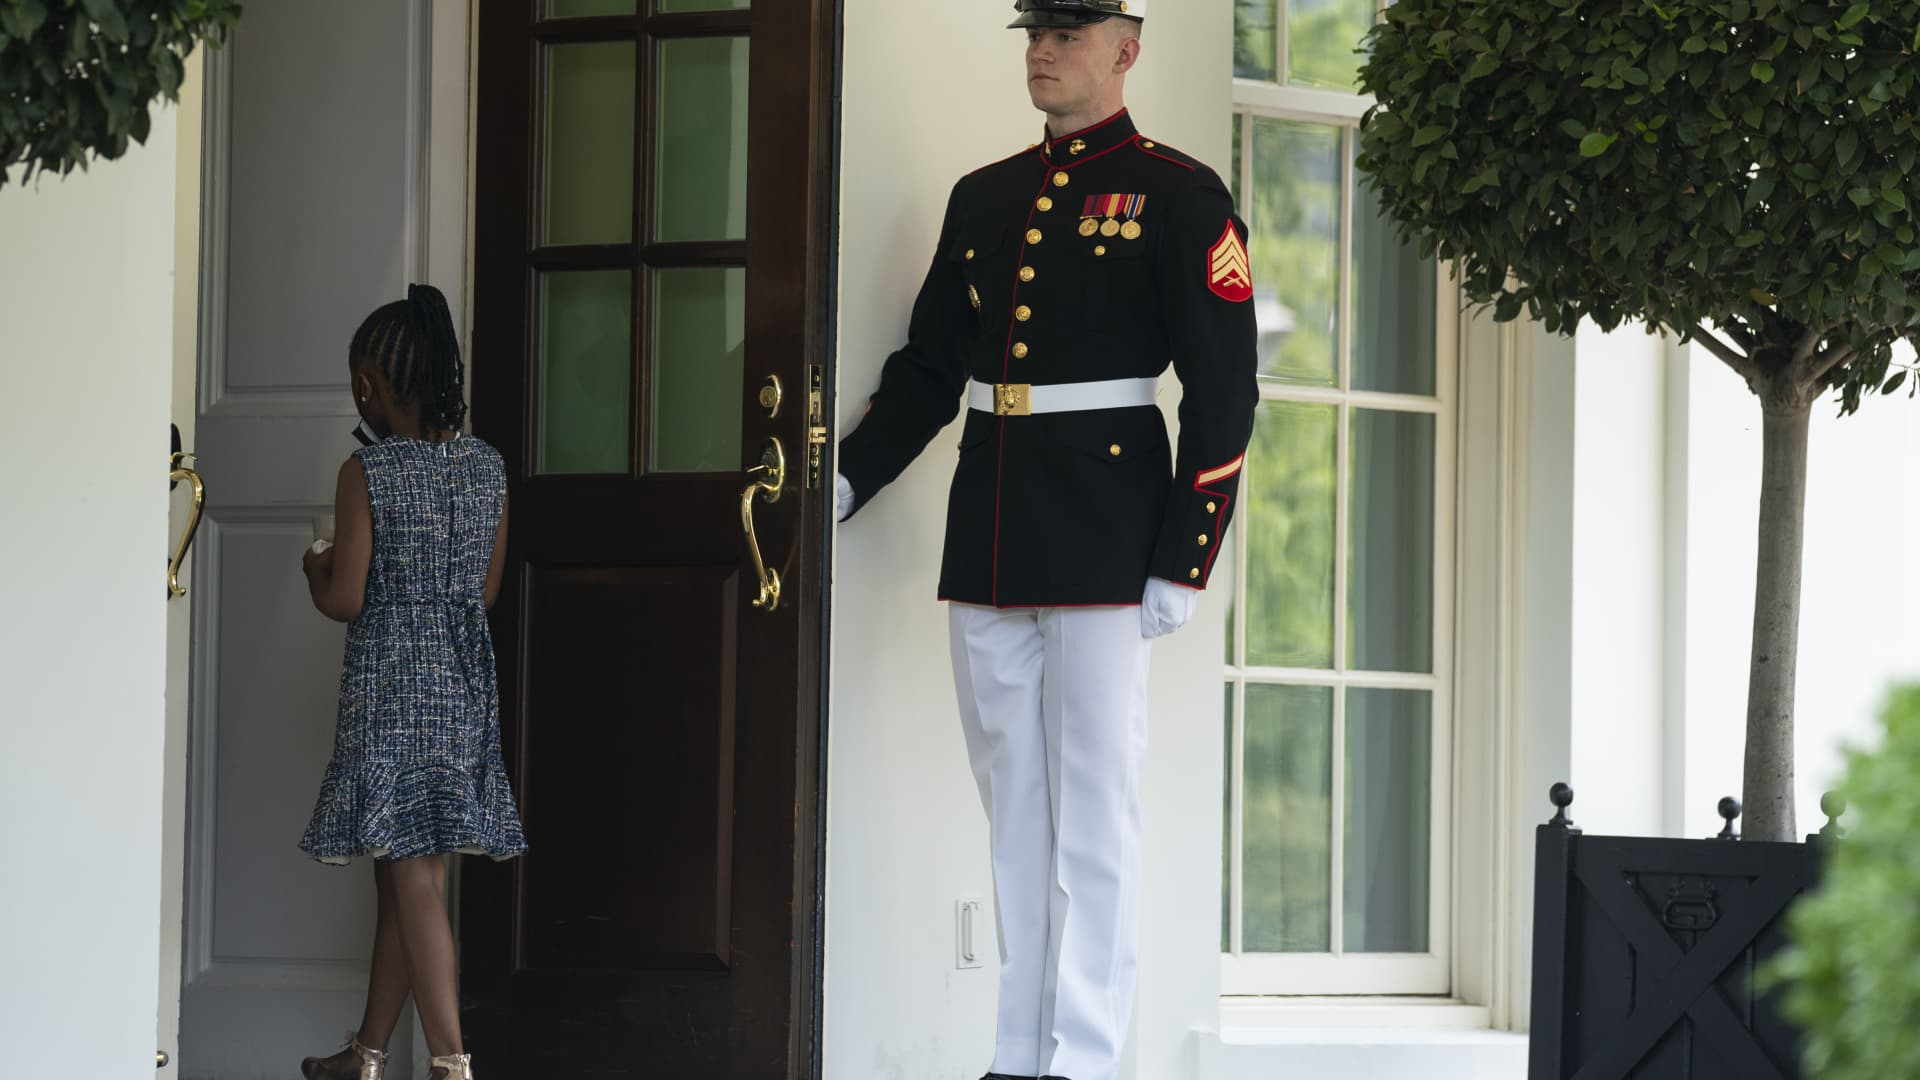 A Marine holds the door as Gianna Floyd, the daughter of George Floyd, walks into the White House, Tuesday, May 25, 2021, in Washington.